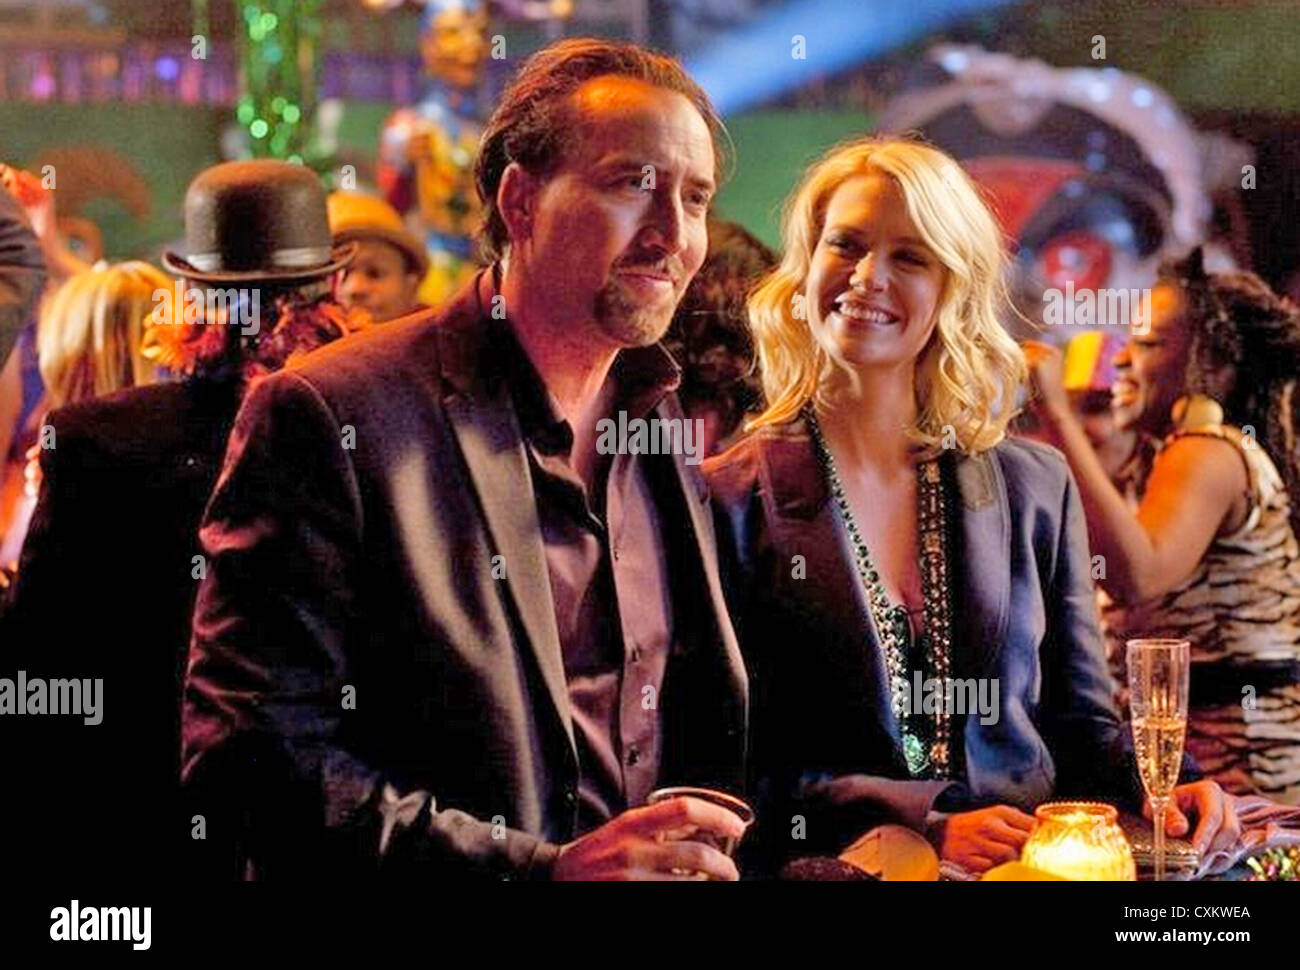 SEEKING JUSTICE (aka Justice) 2011 Endgame Entertaiment film with January Jones and Nicholas Cage - Stock Image